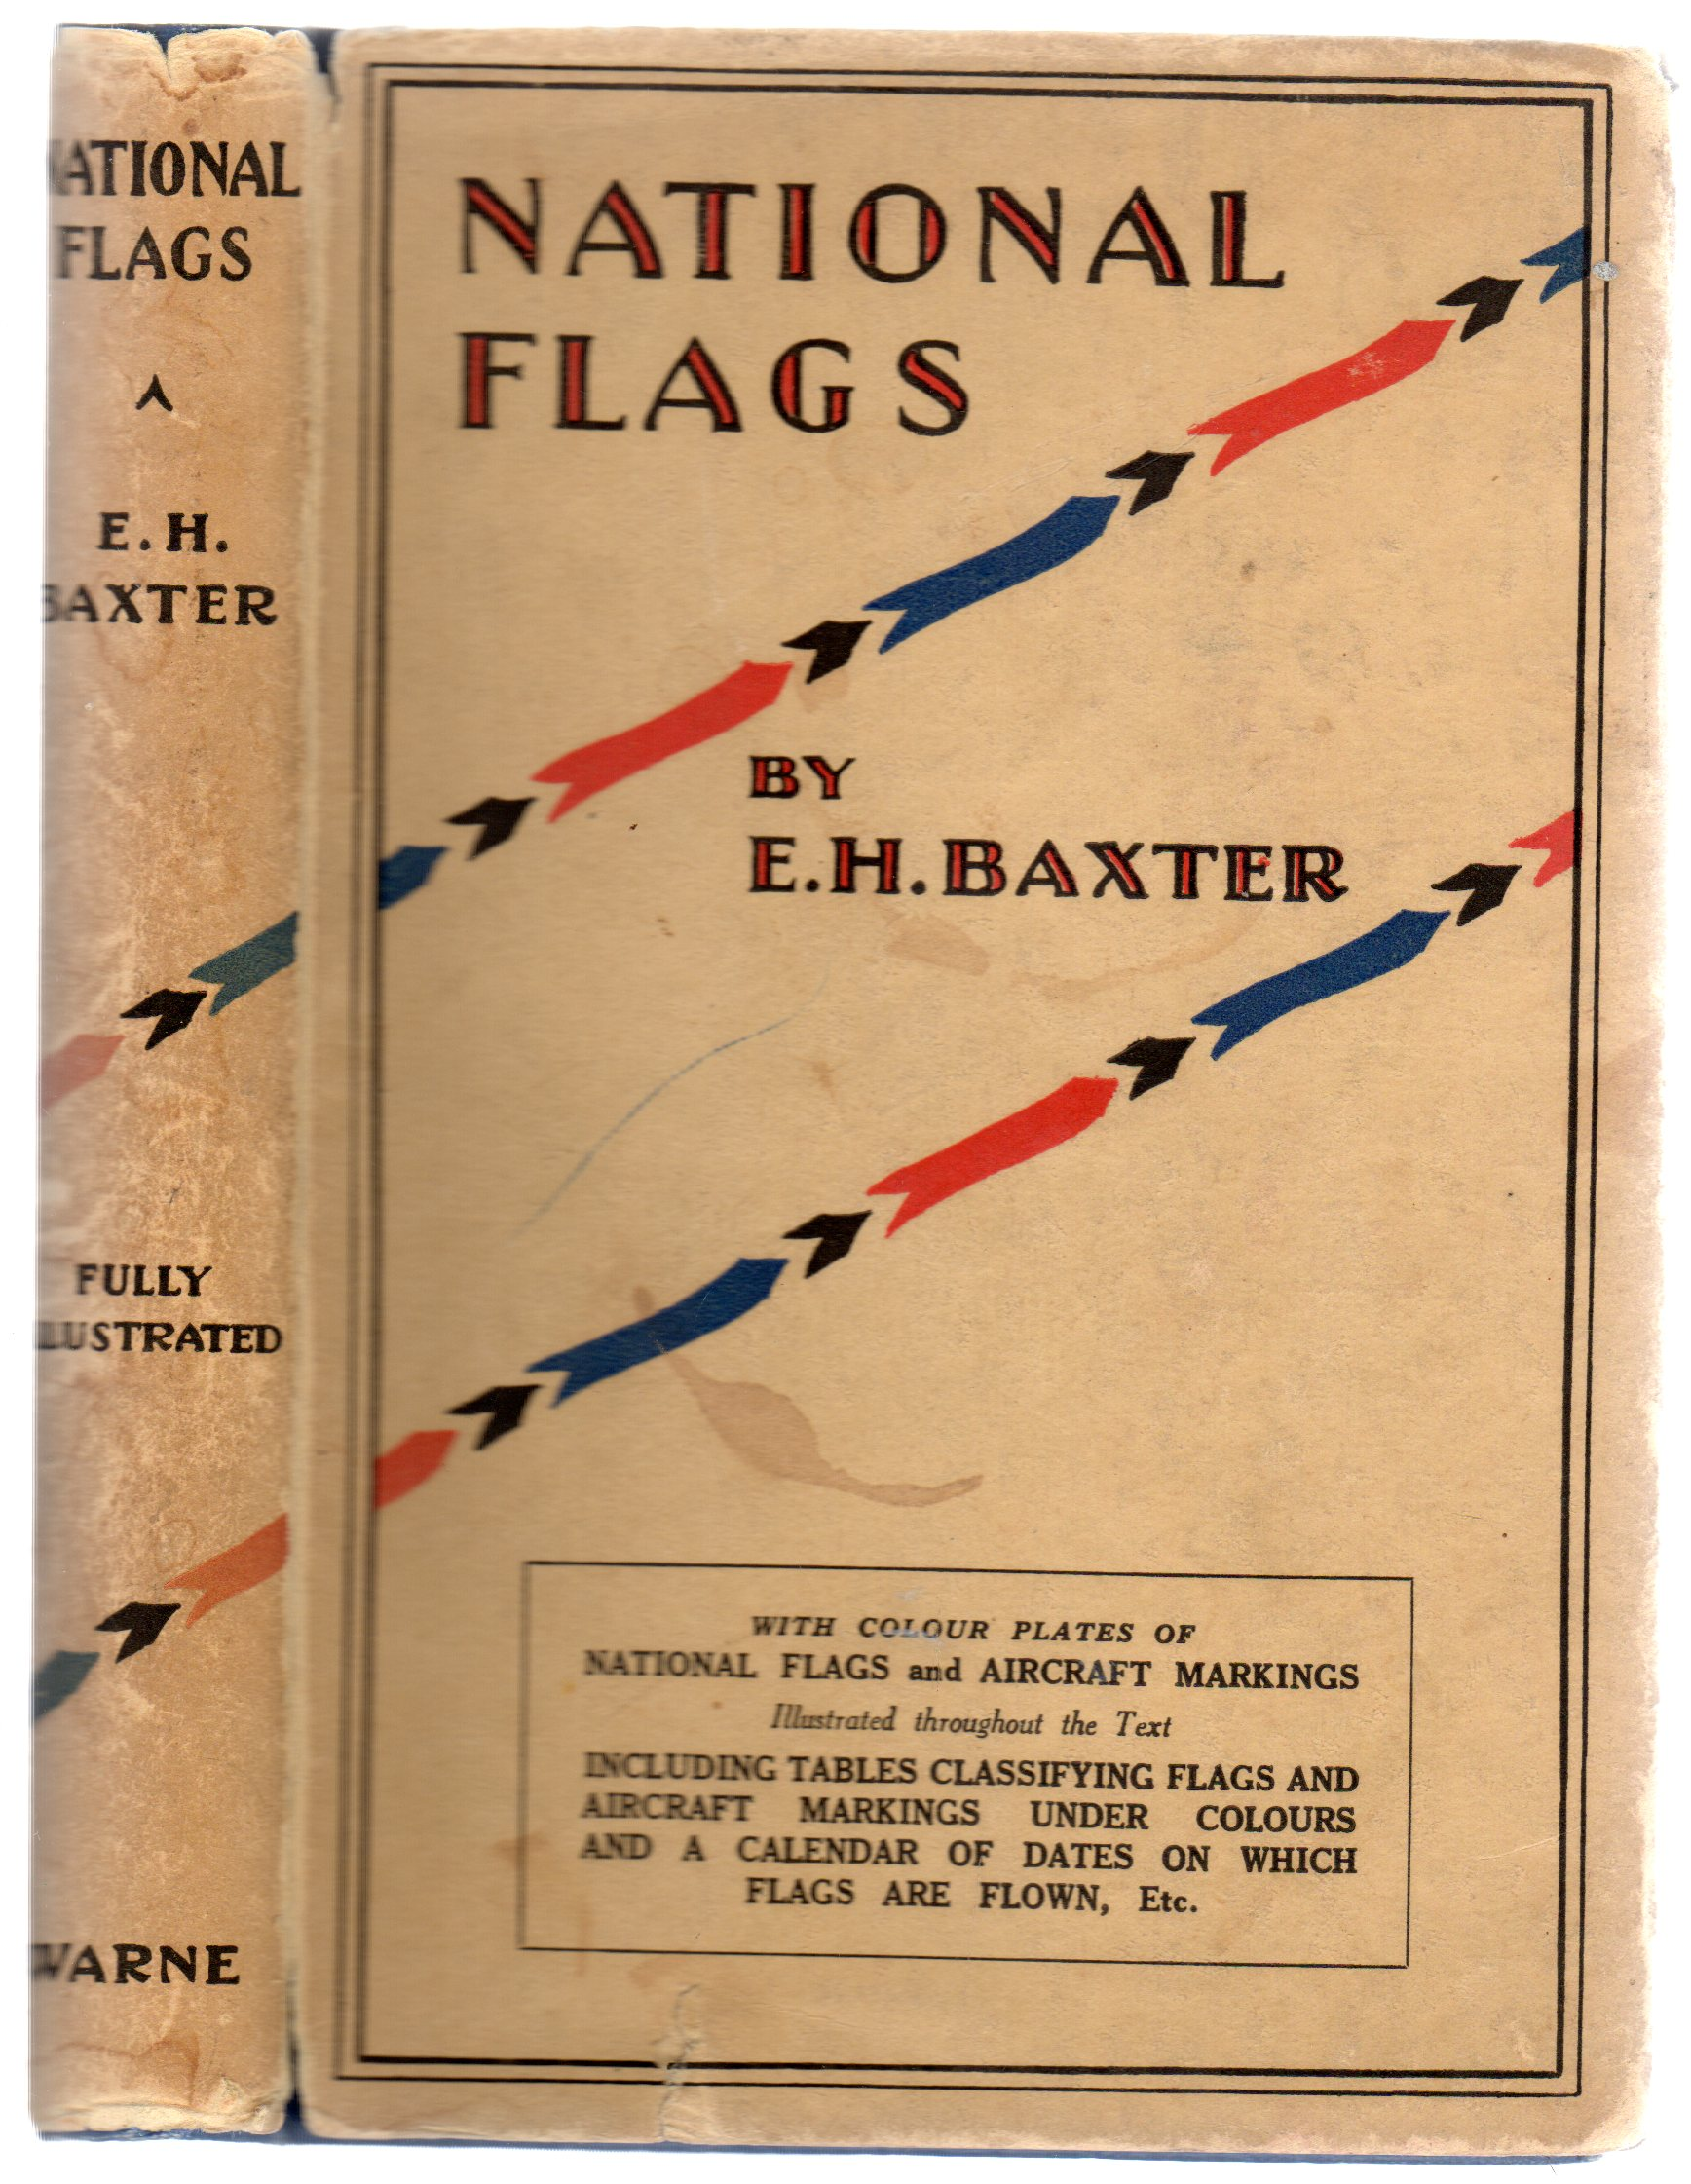 Image for National Flags : With Aircraft Markings Calendar OF Days For Hoisting National Flags And Colour Keys For Ready Identification